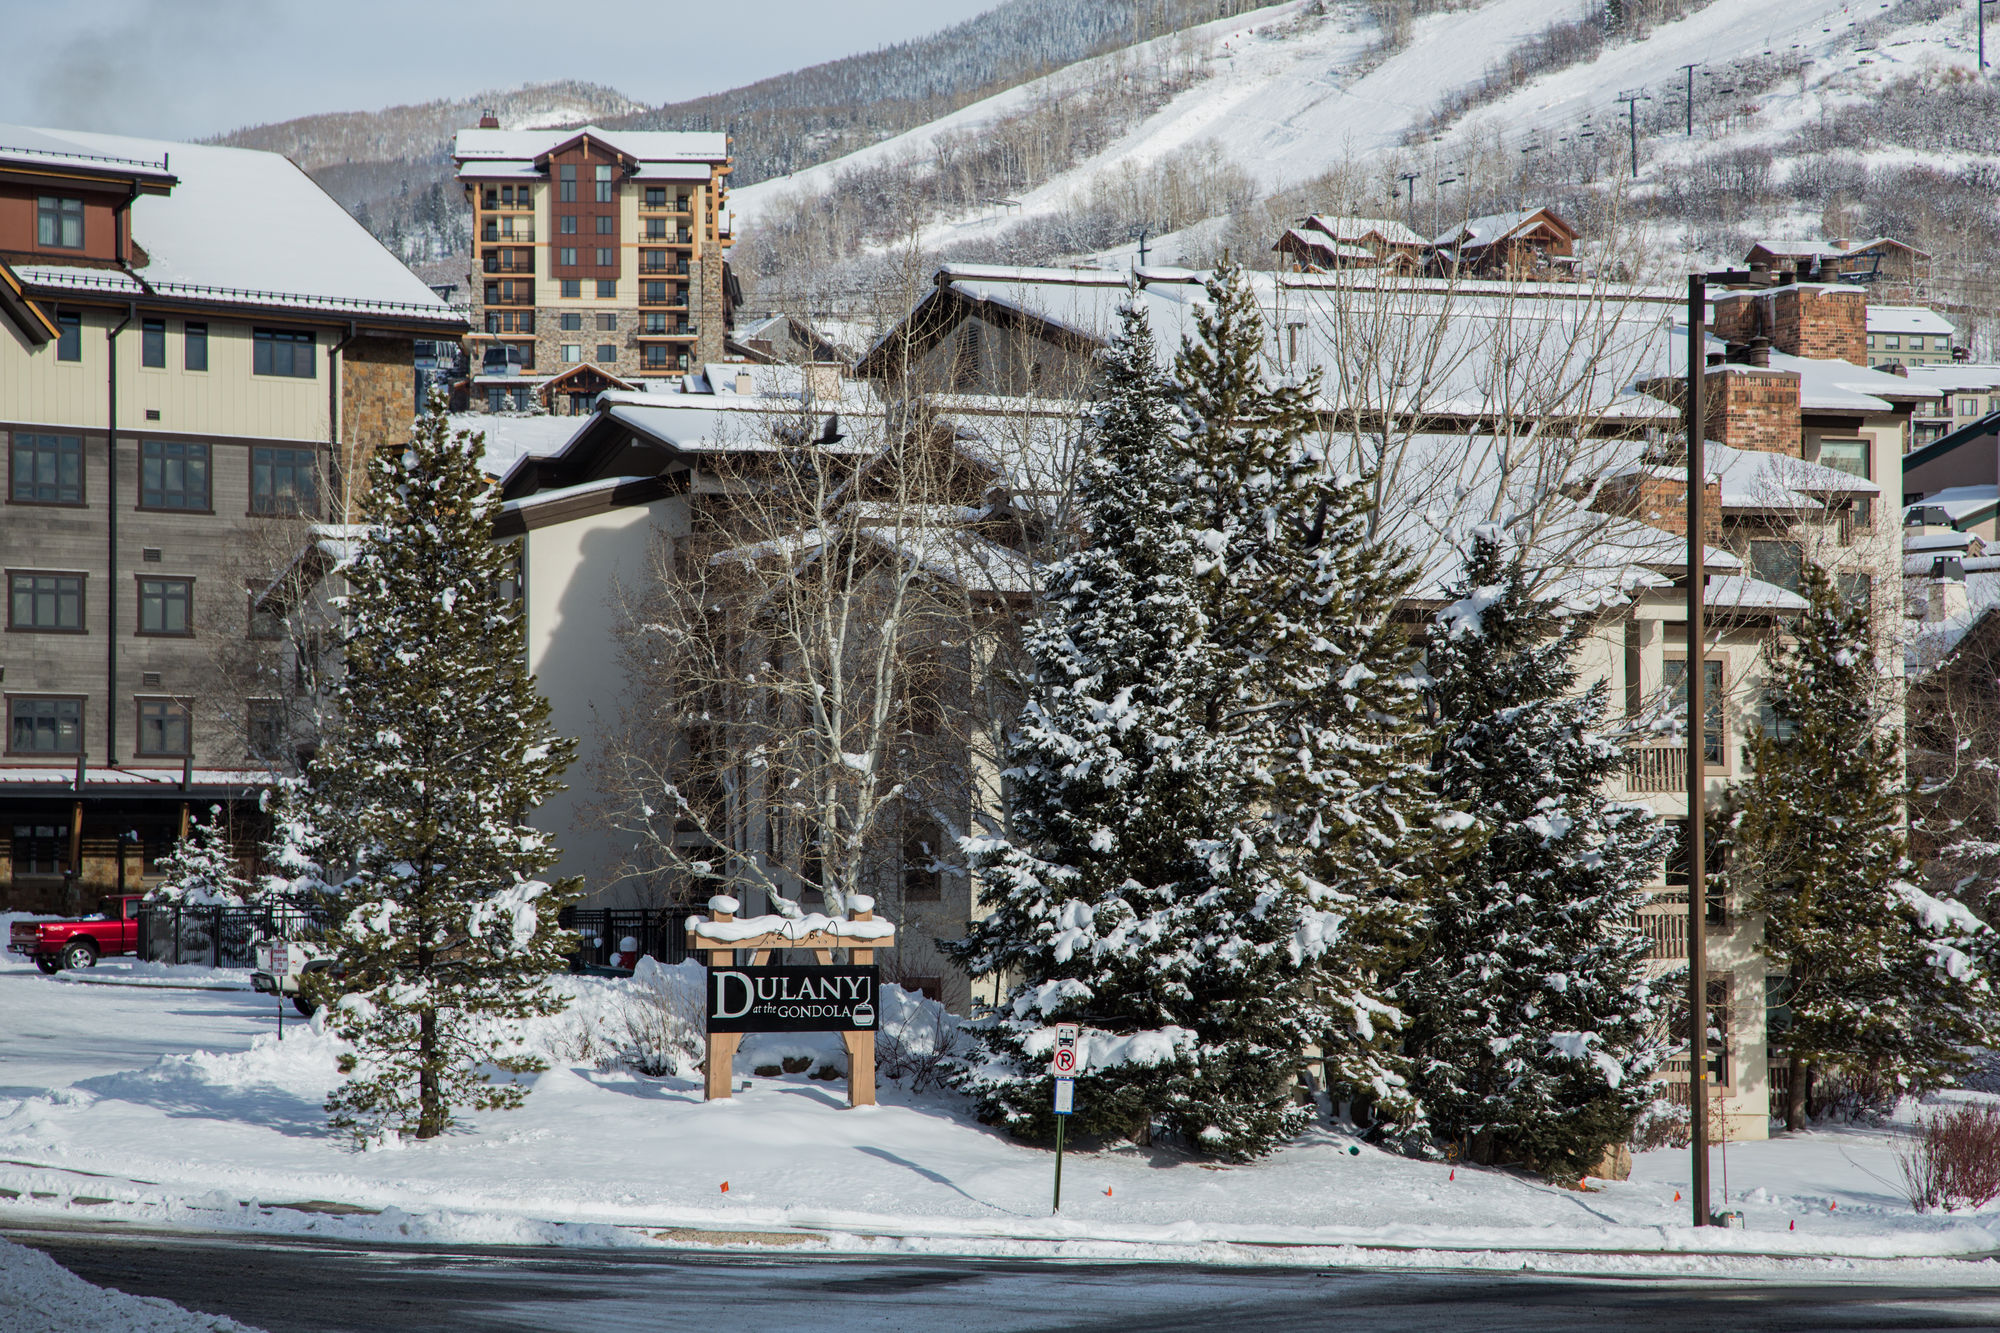 Dulany at the Gondola by Steamboat Resorts